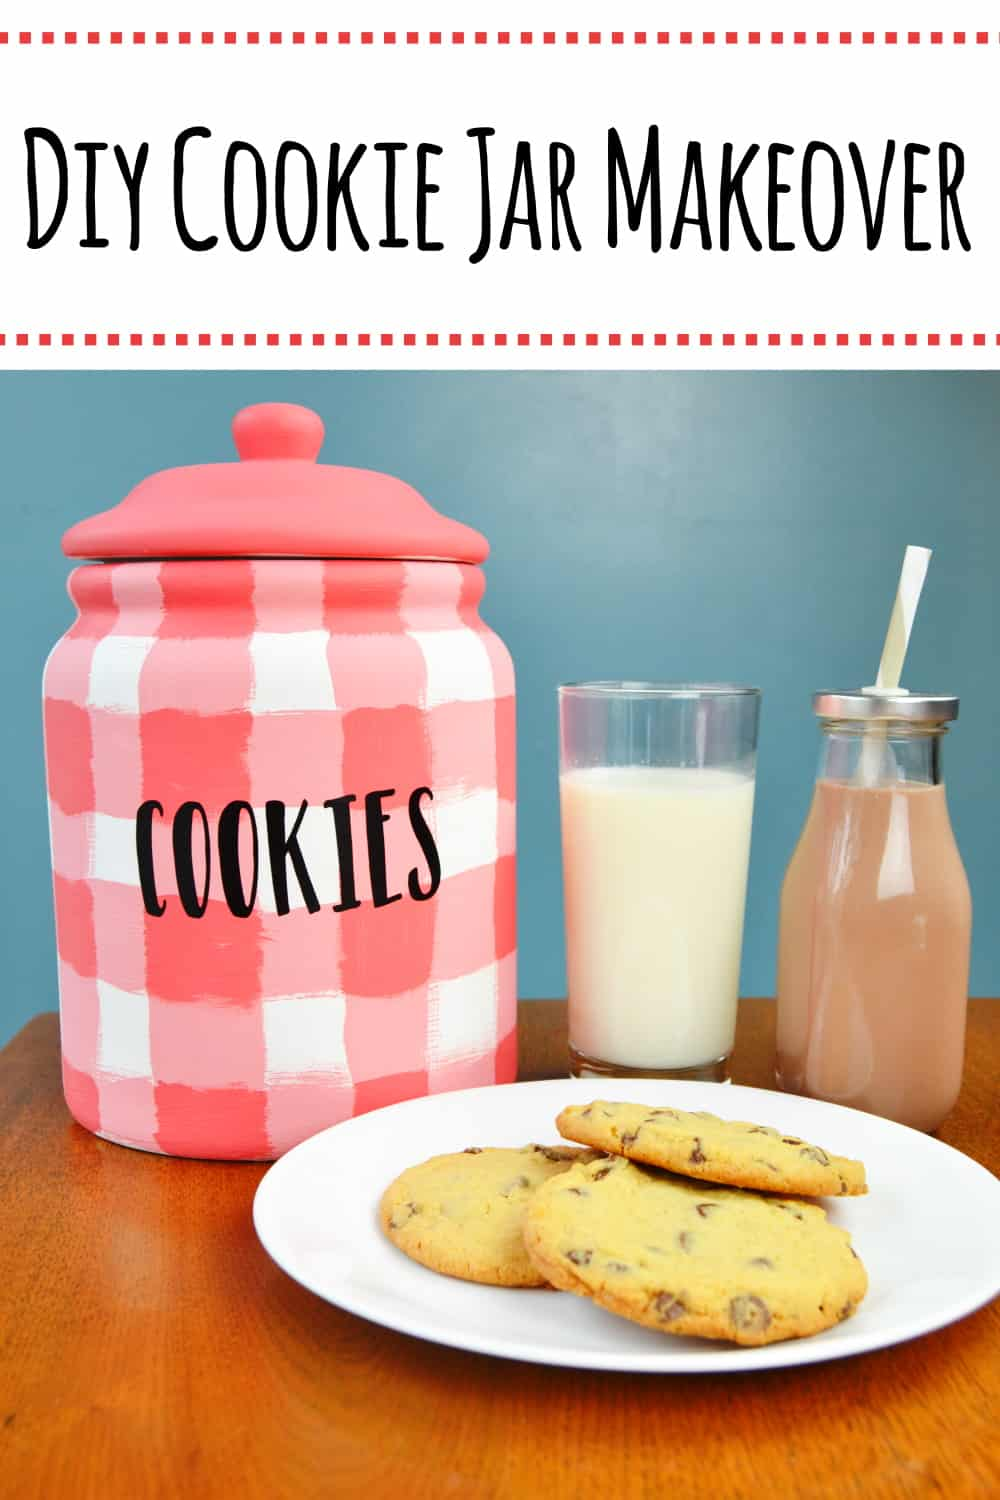 DIY Cookie Jar Makeover- Make over an old cookie jar with a rustic farmhouse style buffalo check following this tutorial. Perfect for milk and cookies time together as a family. #diycookiejar #buffalocheck #RealMilkMoment #LoveWhatsReal